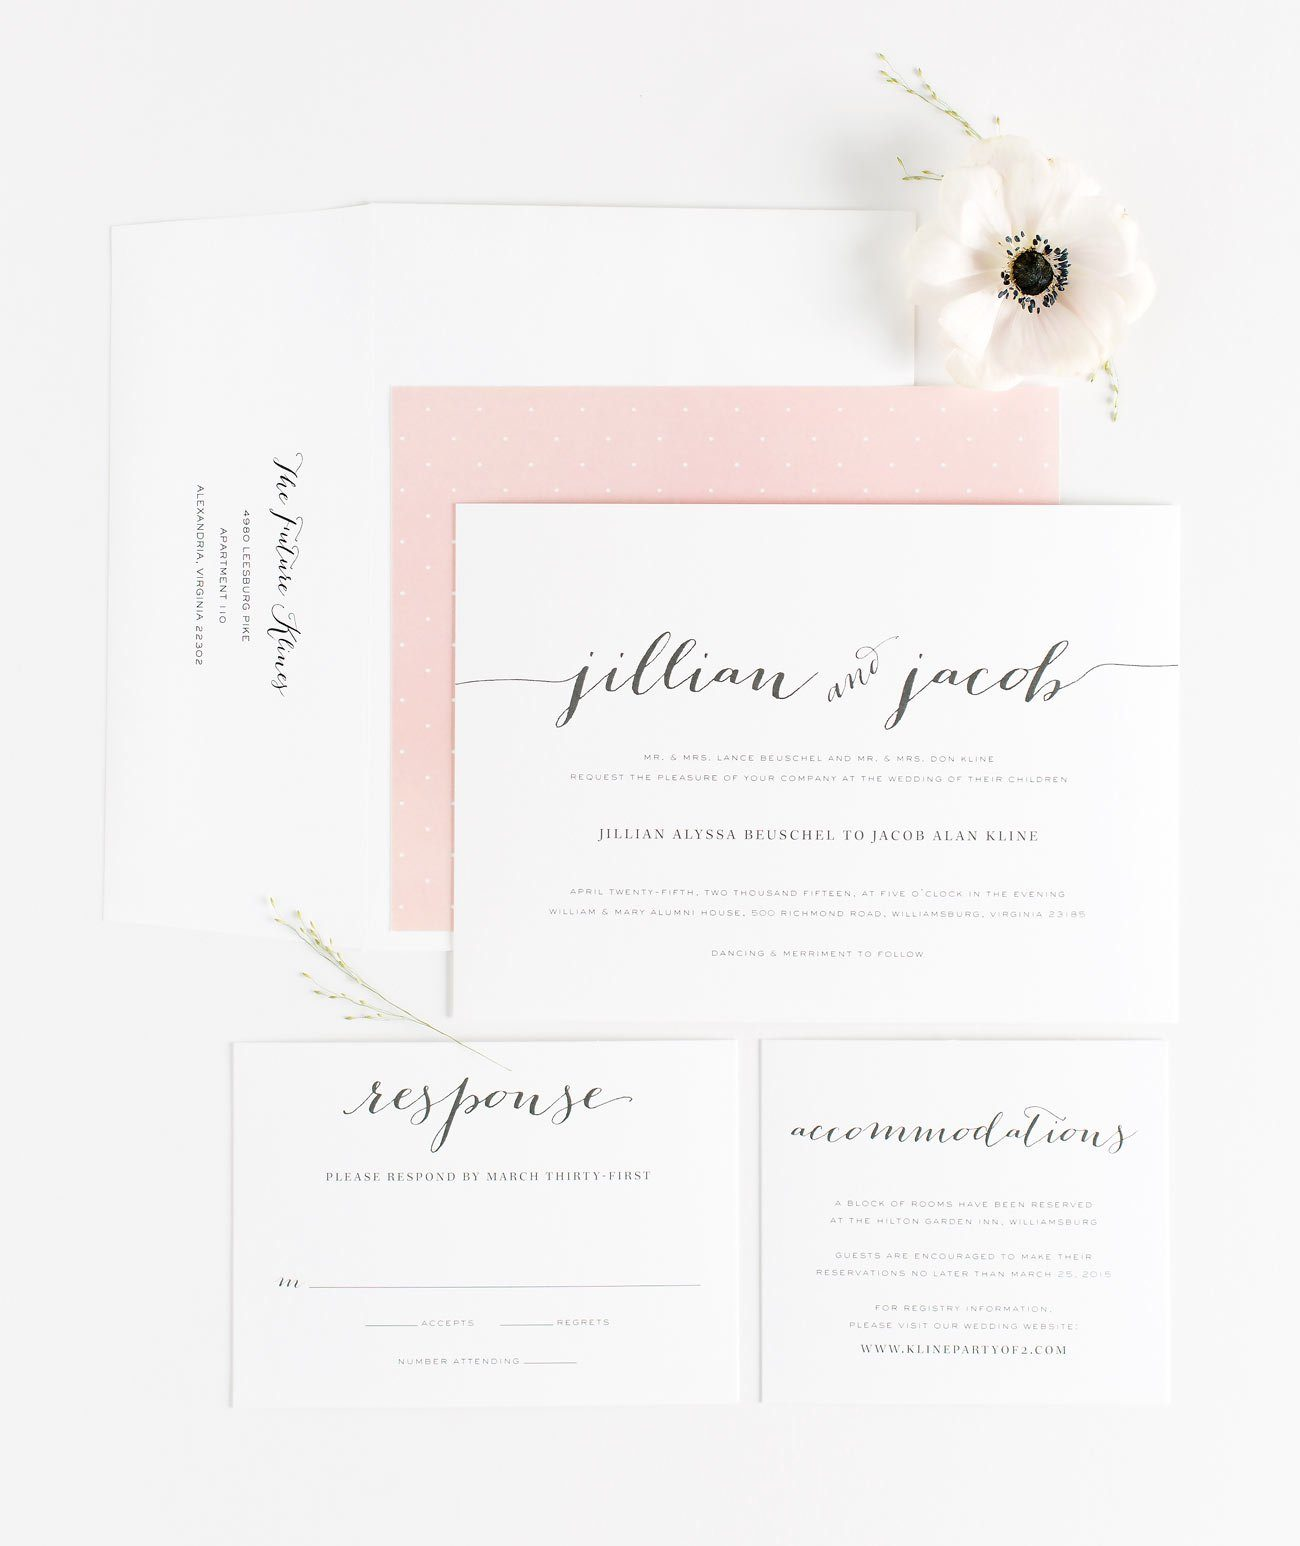 Calligraphy Wedding Invitations in Rose Quartz